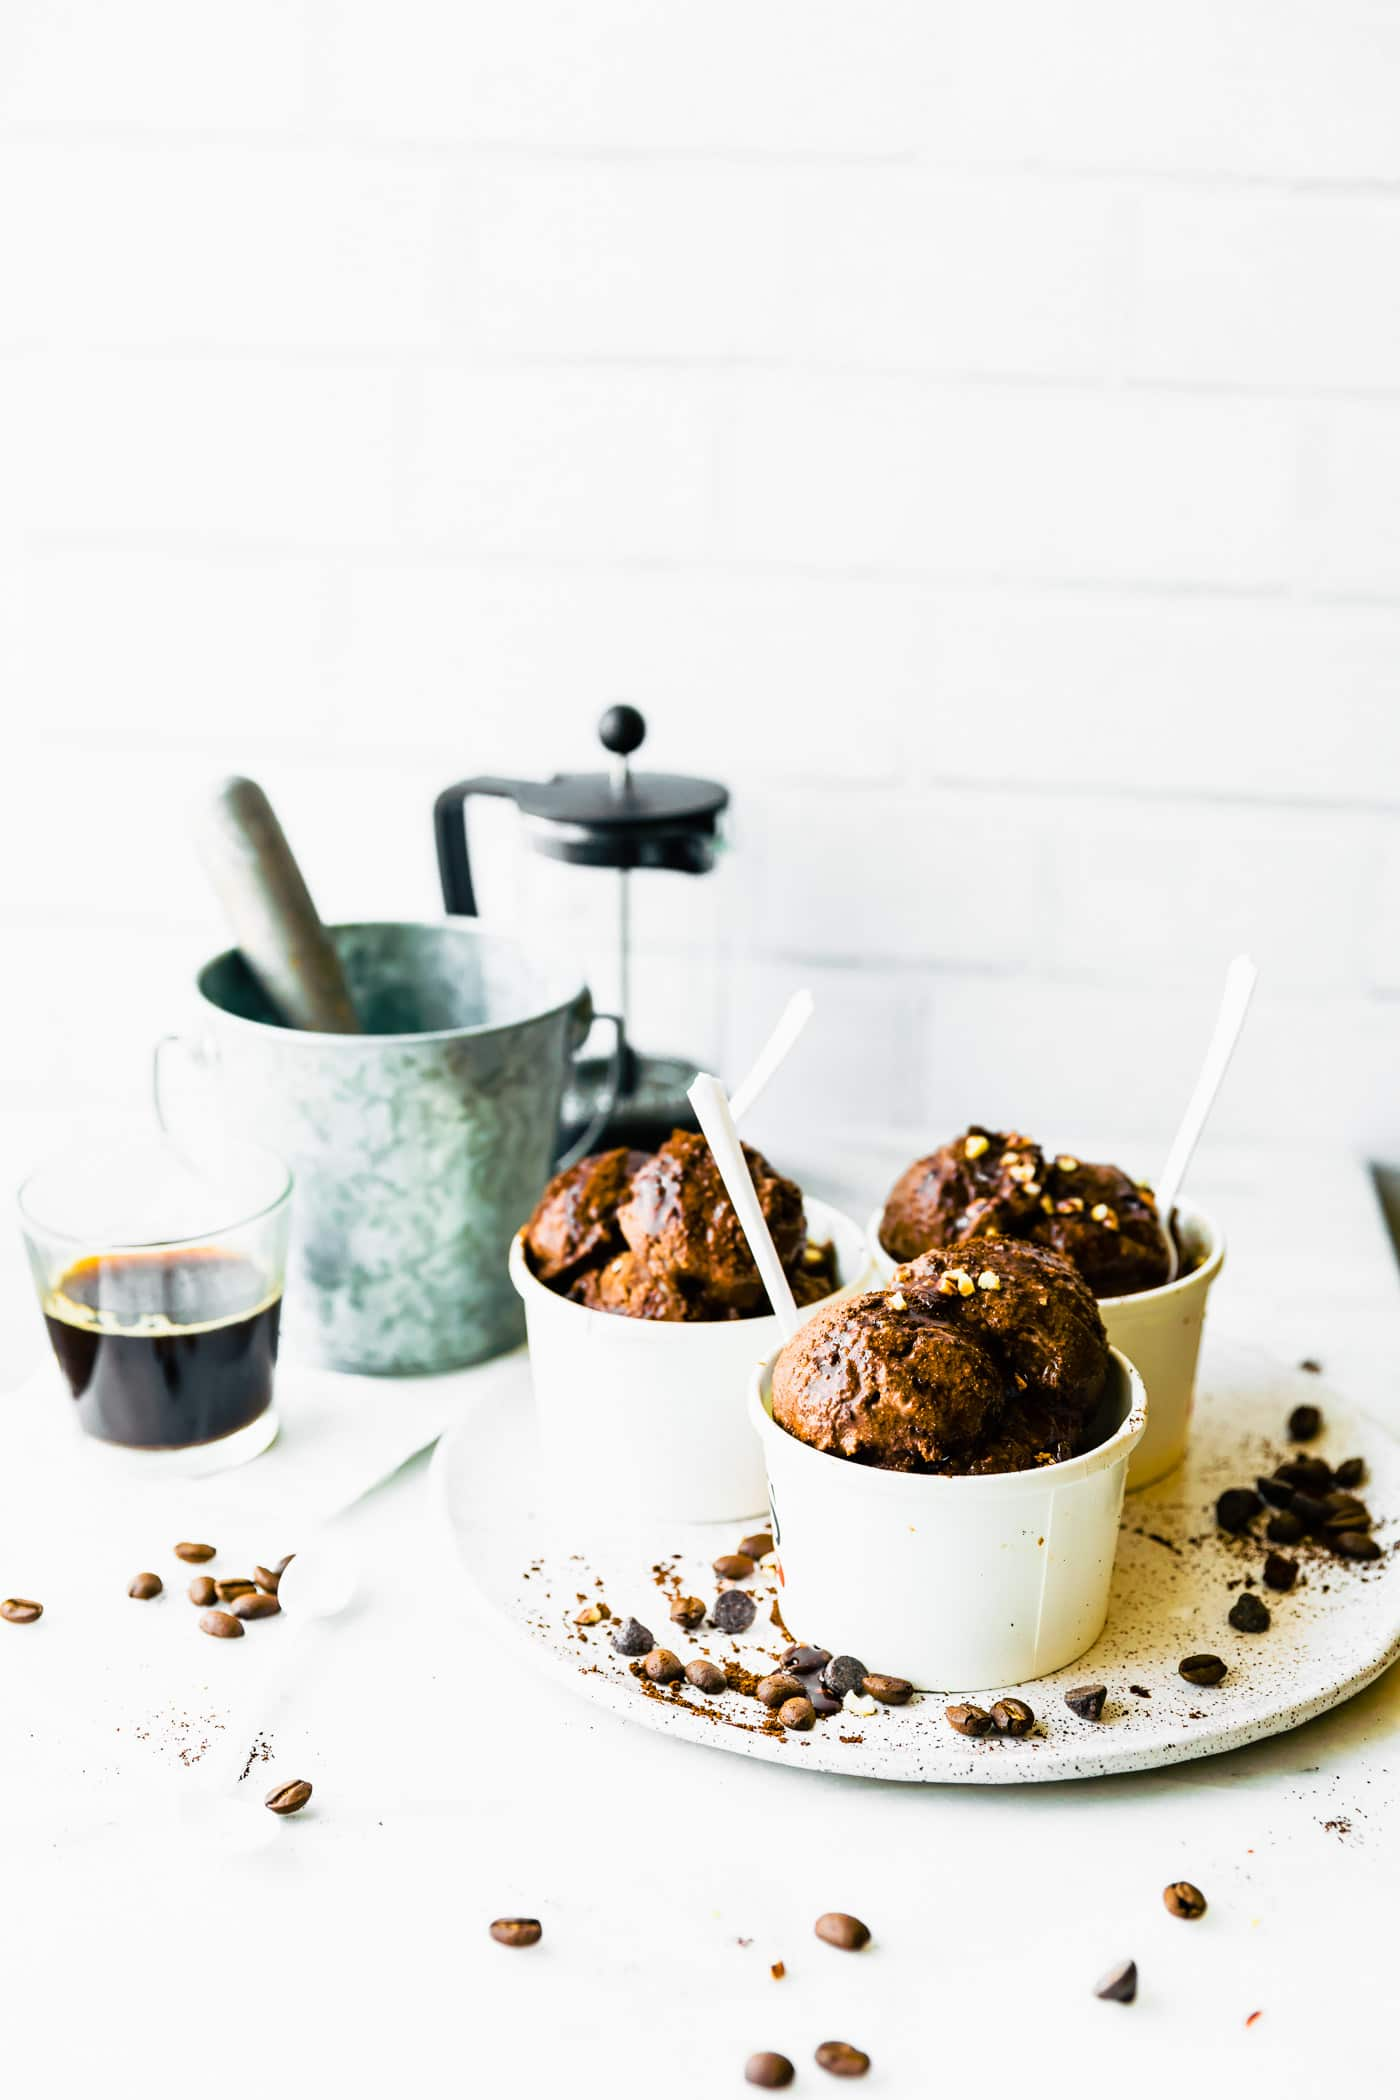 Chocolate sorbet spiked with espresso - the perfect vegan sorbet recipe for chocolate lovers who need a boost of caffeine!